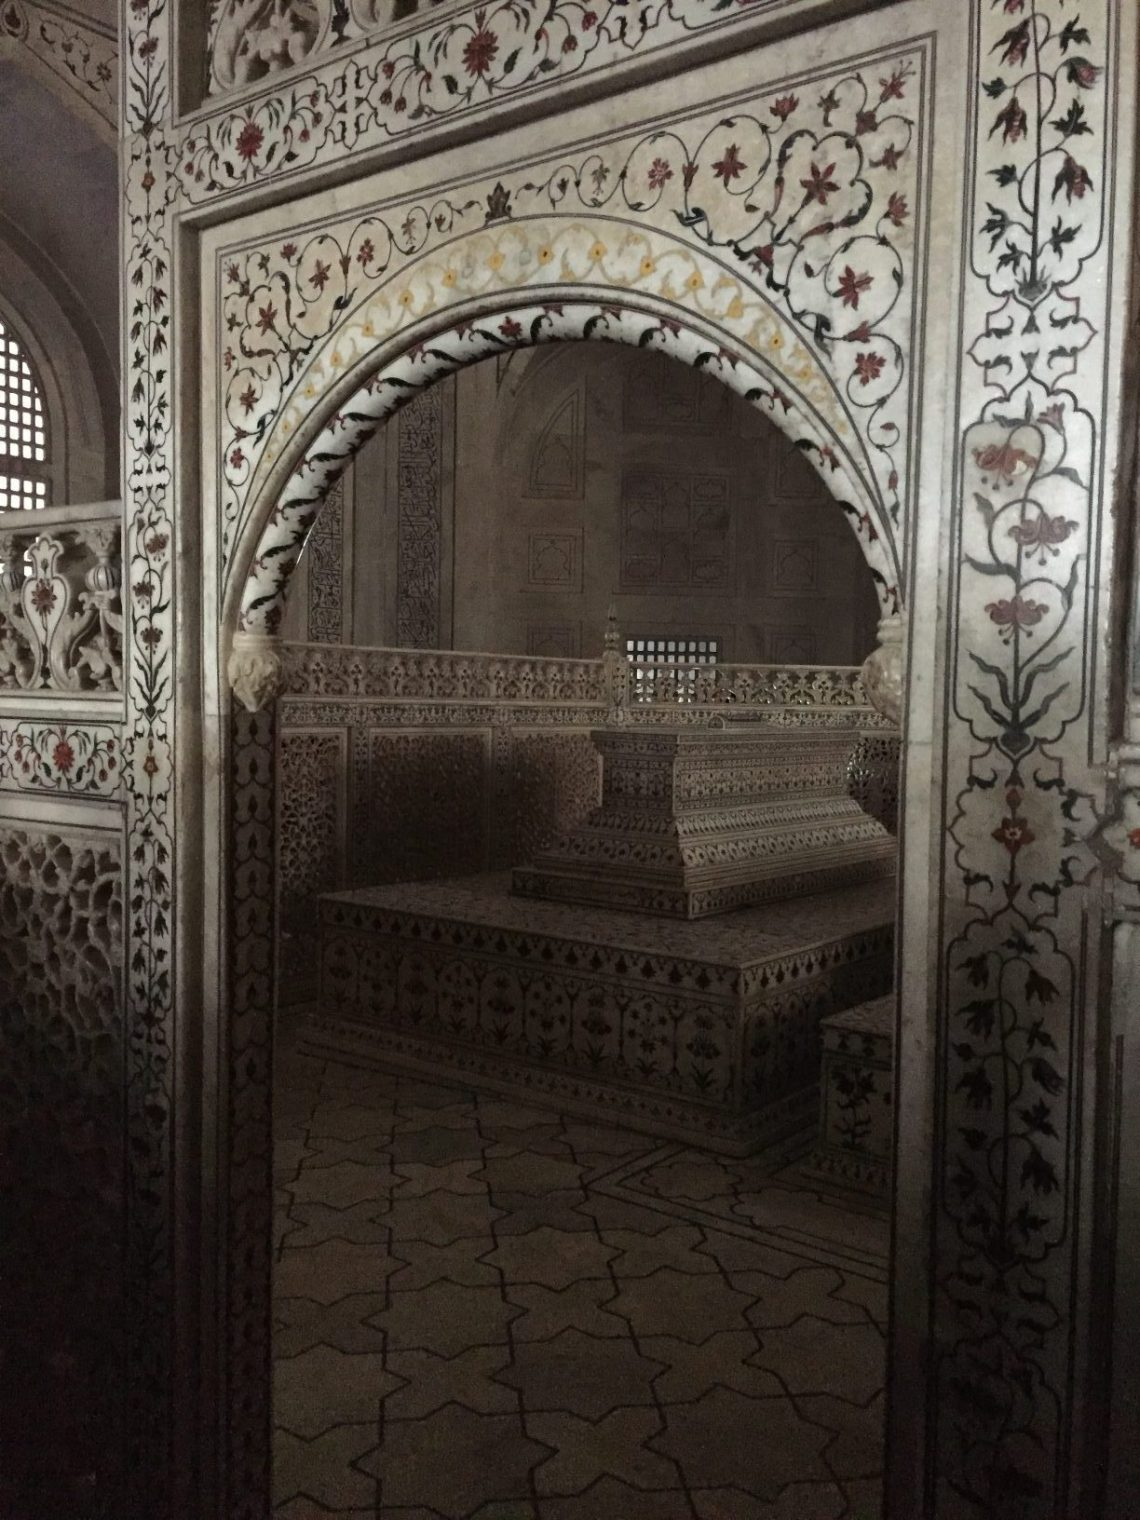 The tomb of Shah Jahan